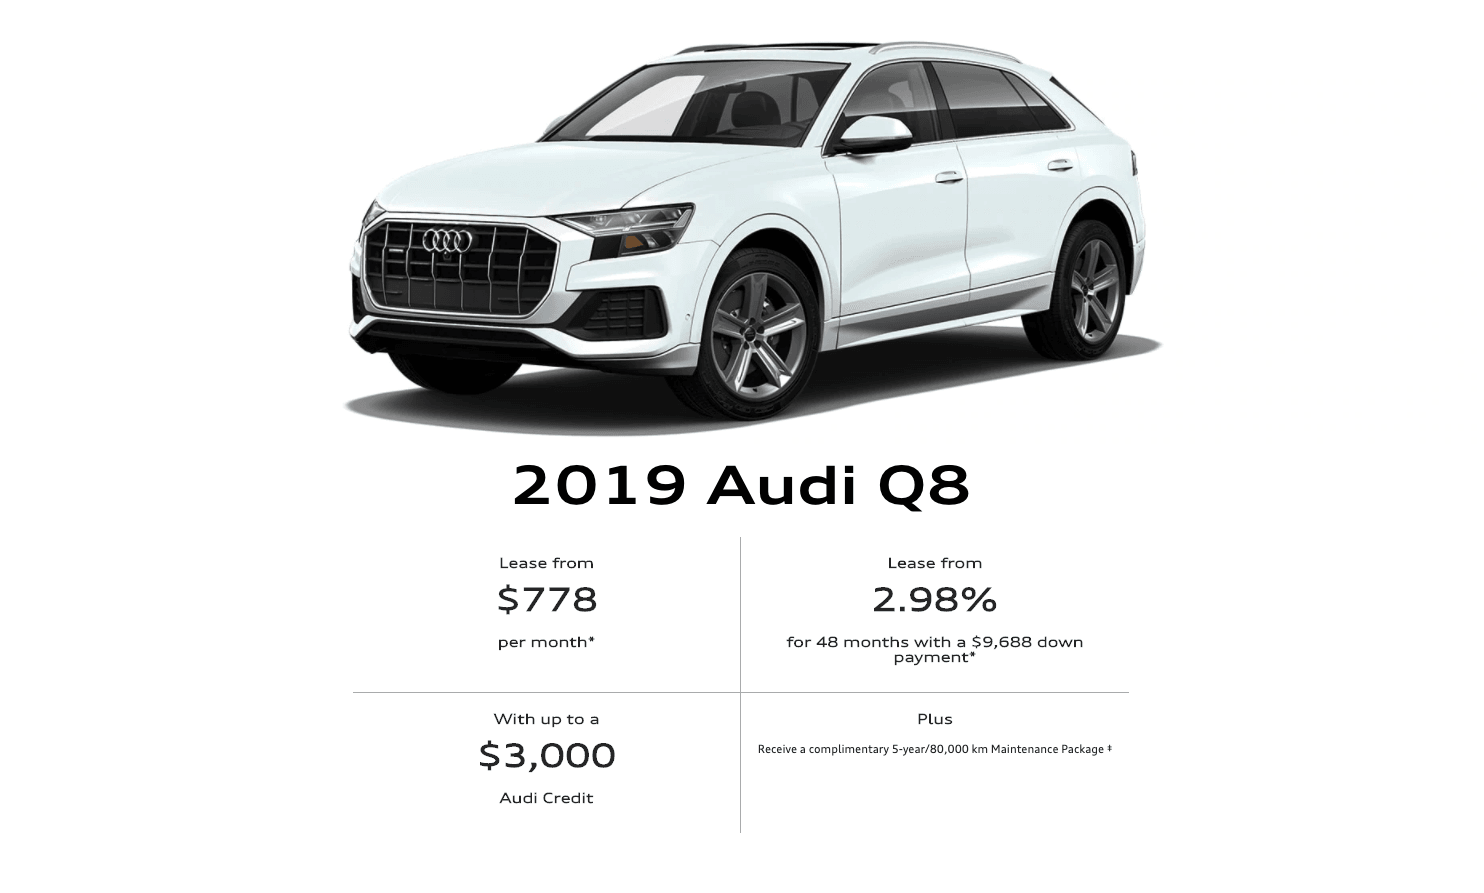 2019 Audi Q8 To